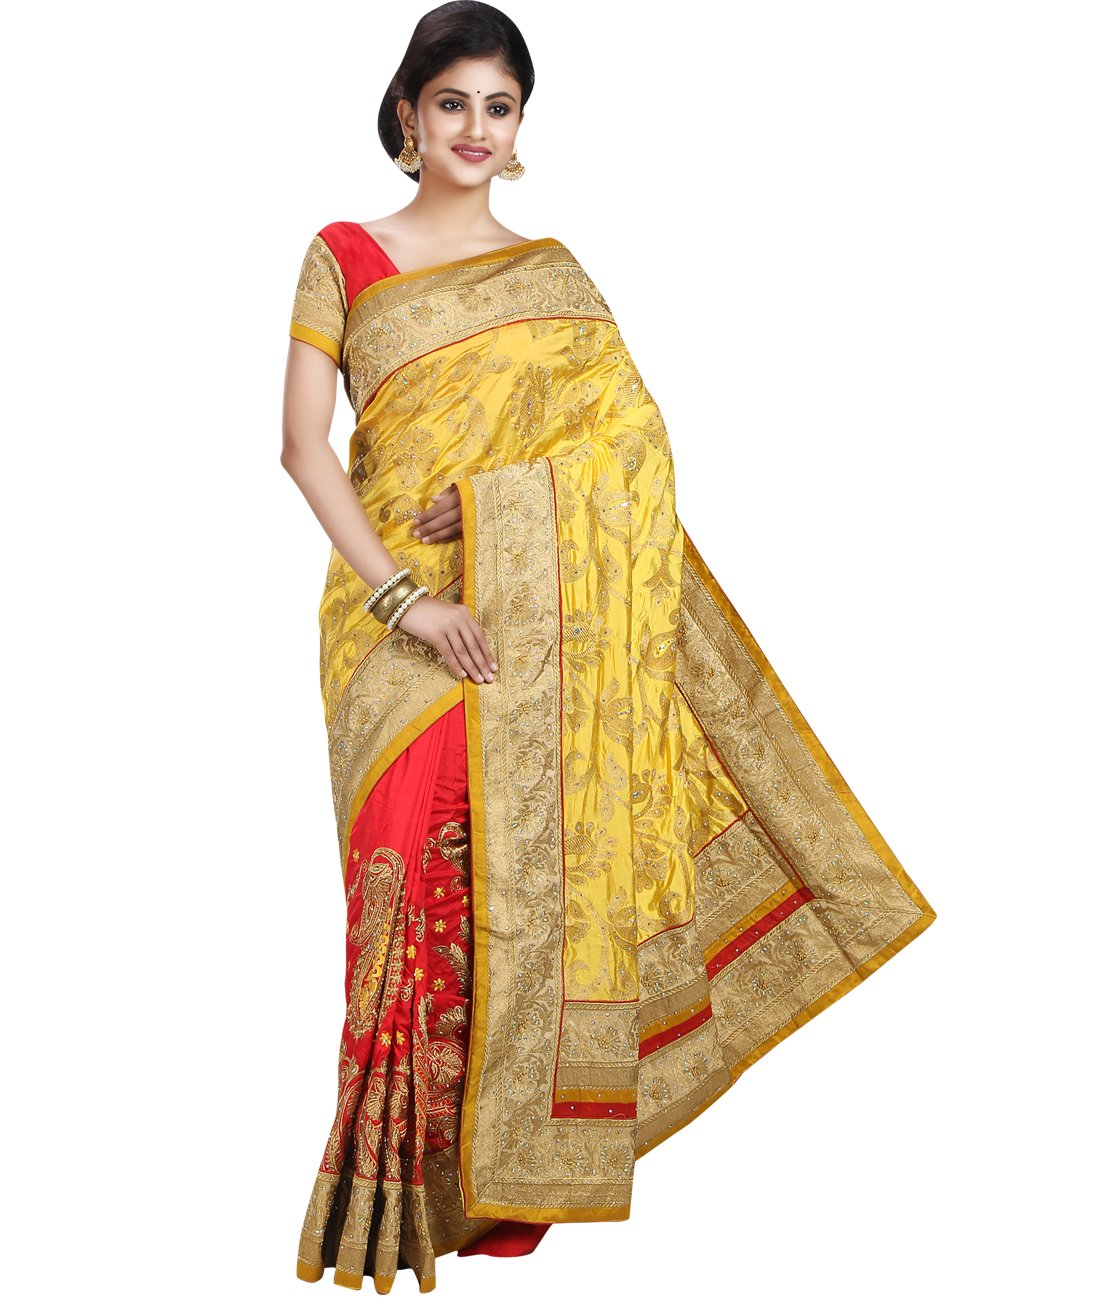 Maahir Garments Exclusive Indian Ethnicwear katha-Stitched Art Dupion Silk Red and Yellow coloured Saree